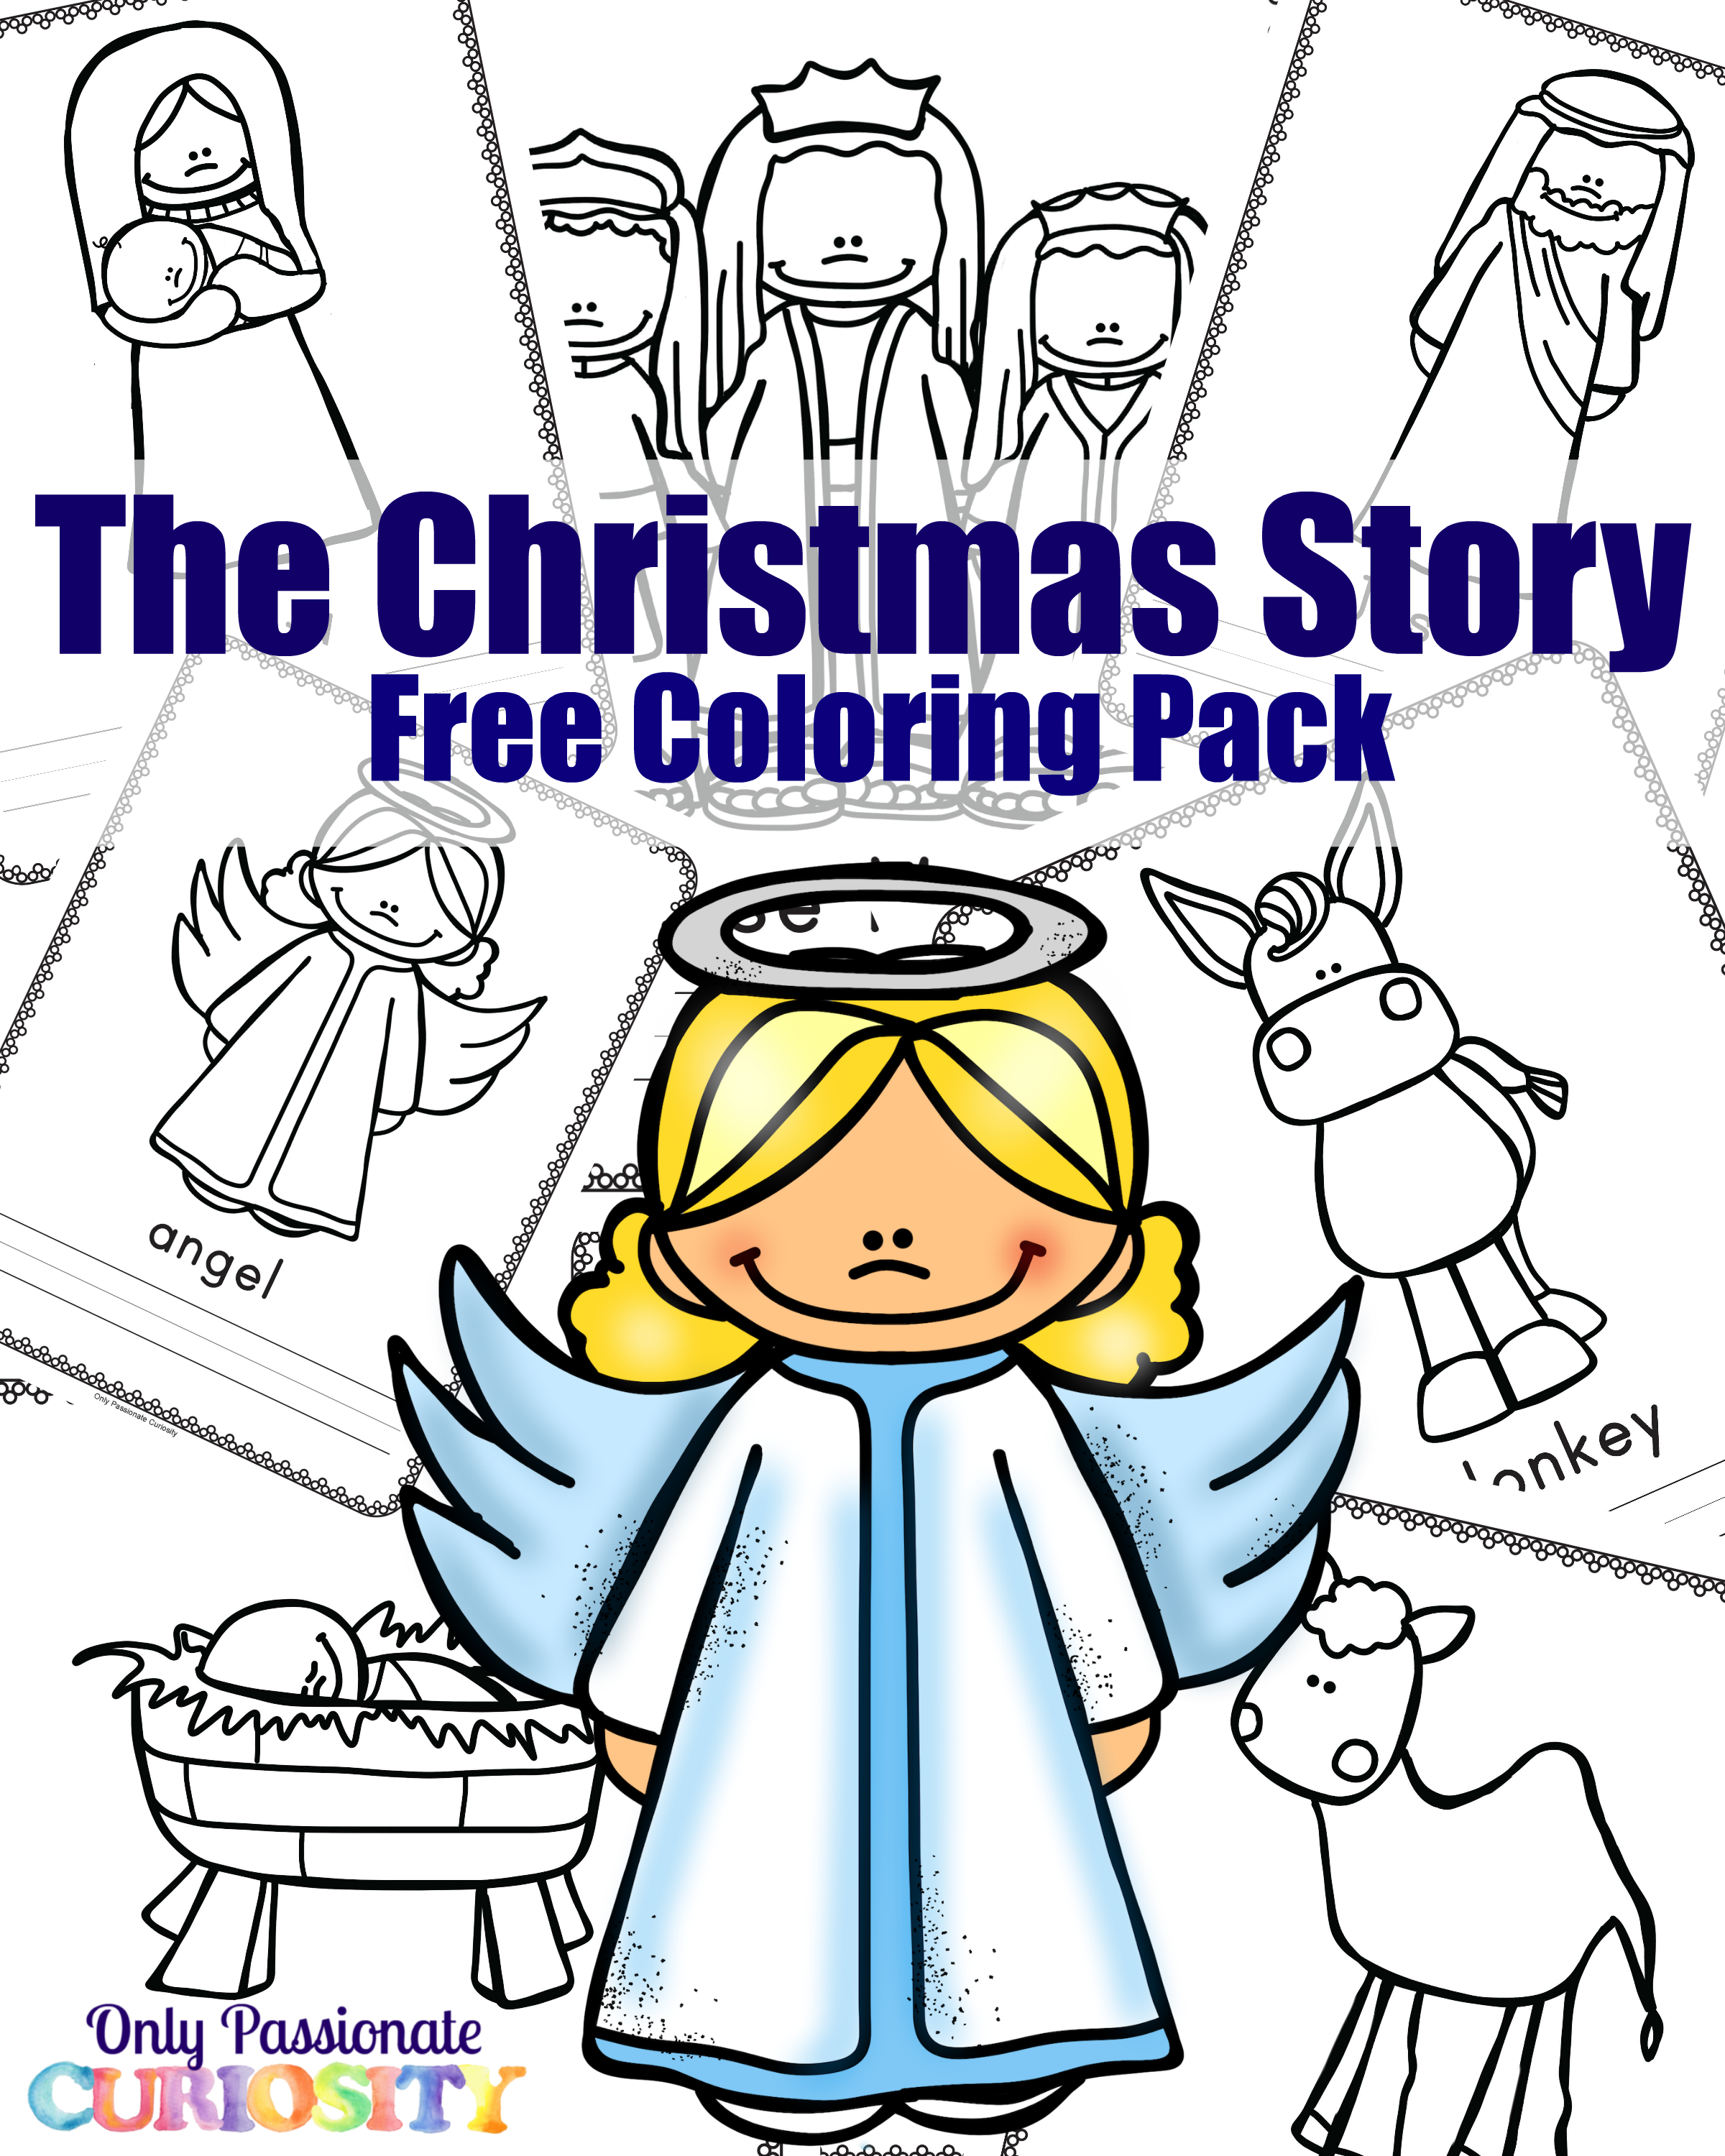 Christmas story coloring pack only passionate curiosity for A christmas story coloring pages